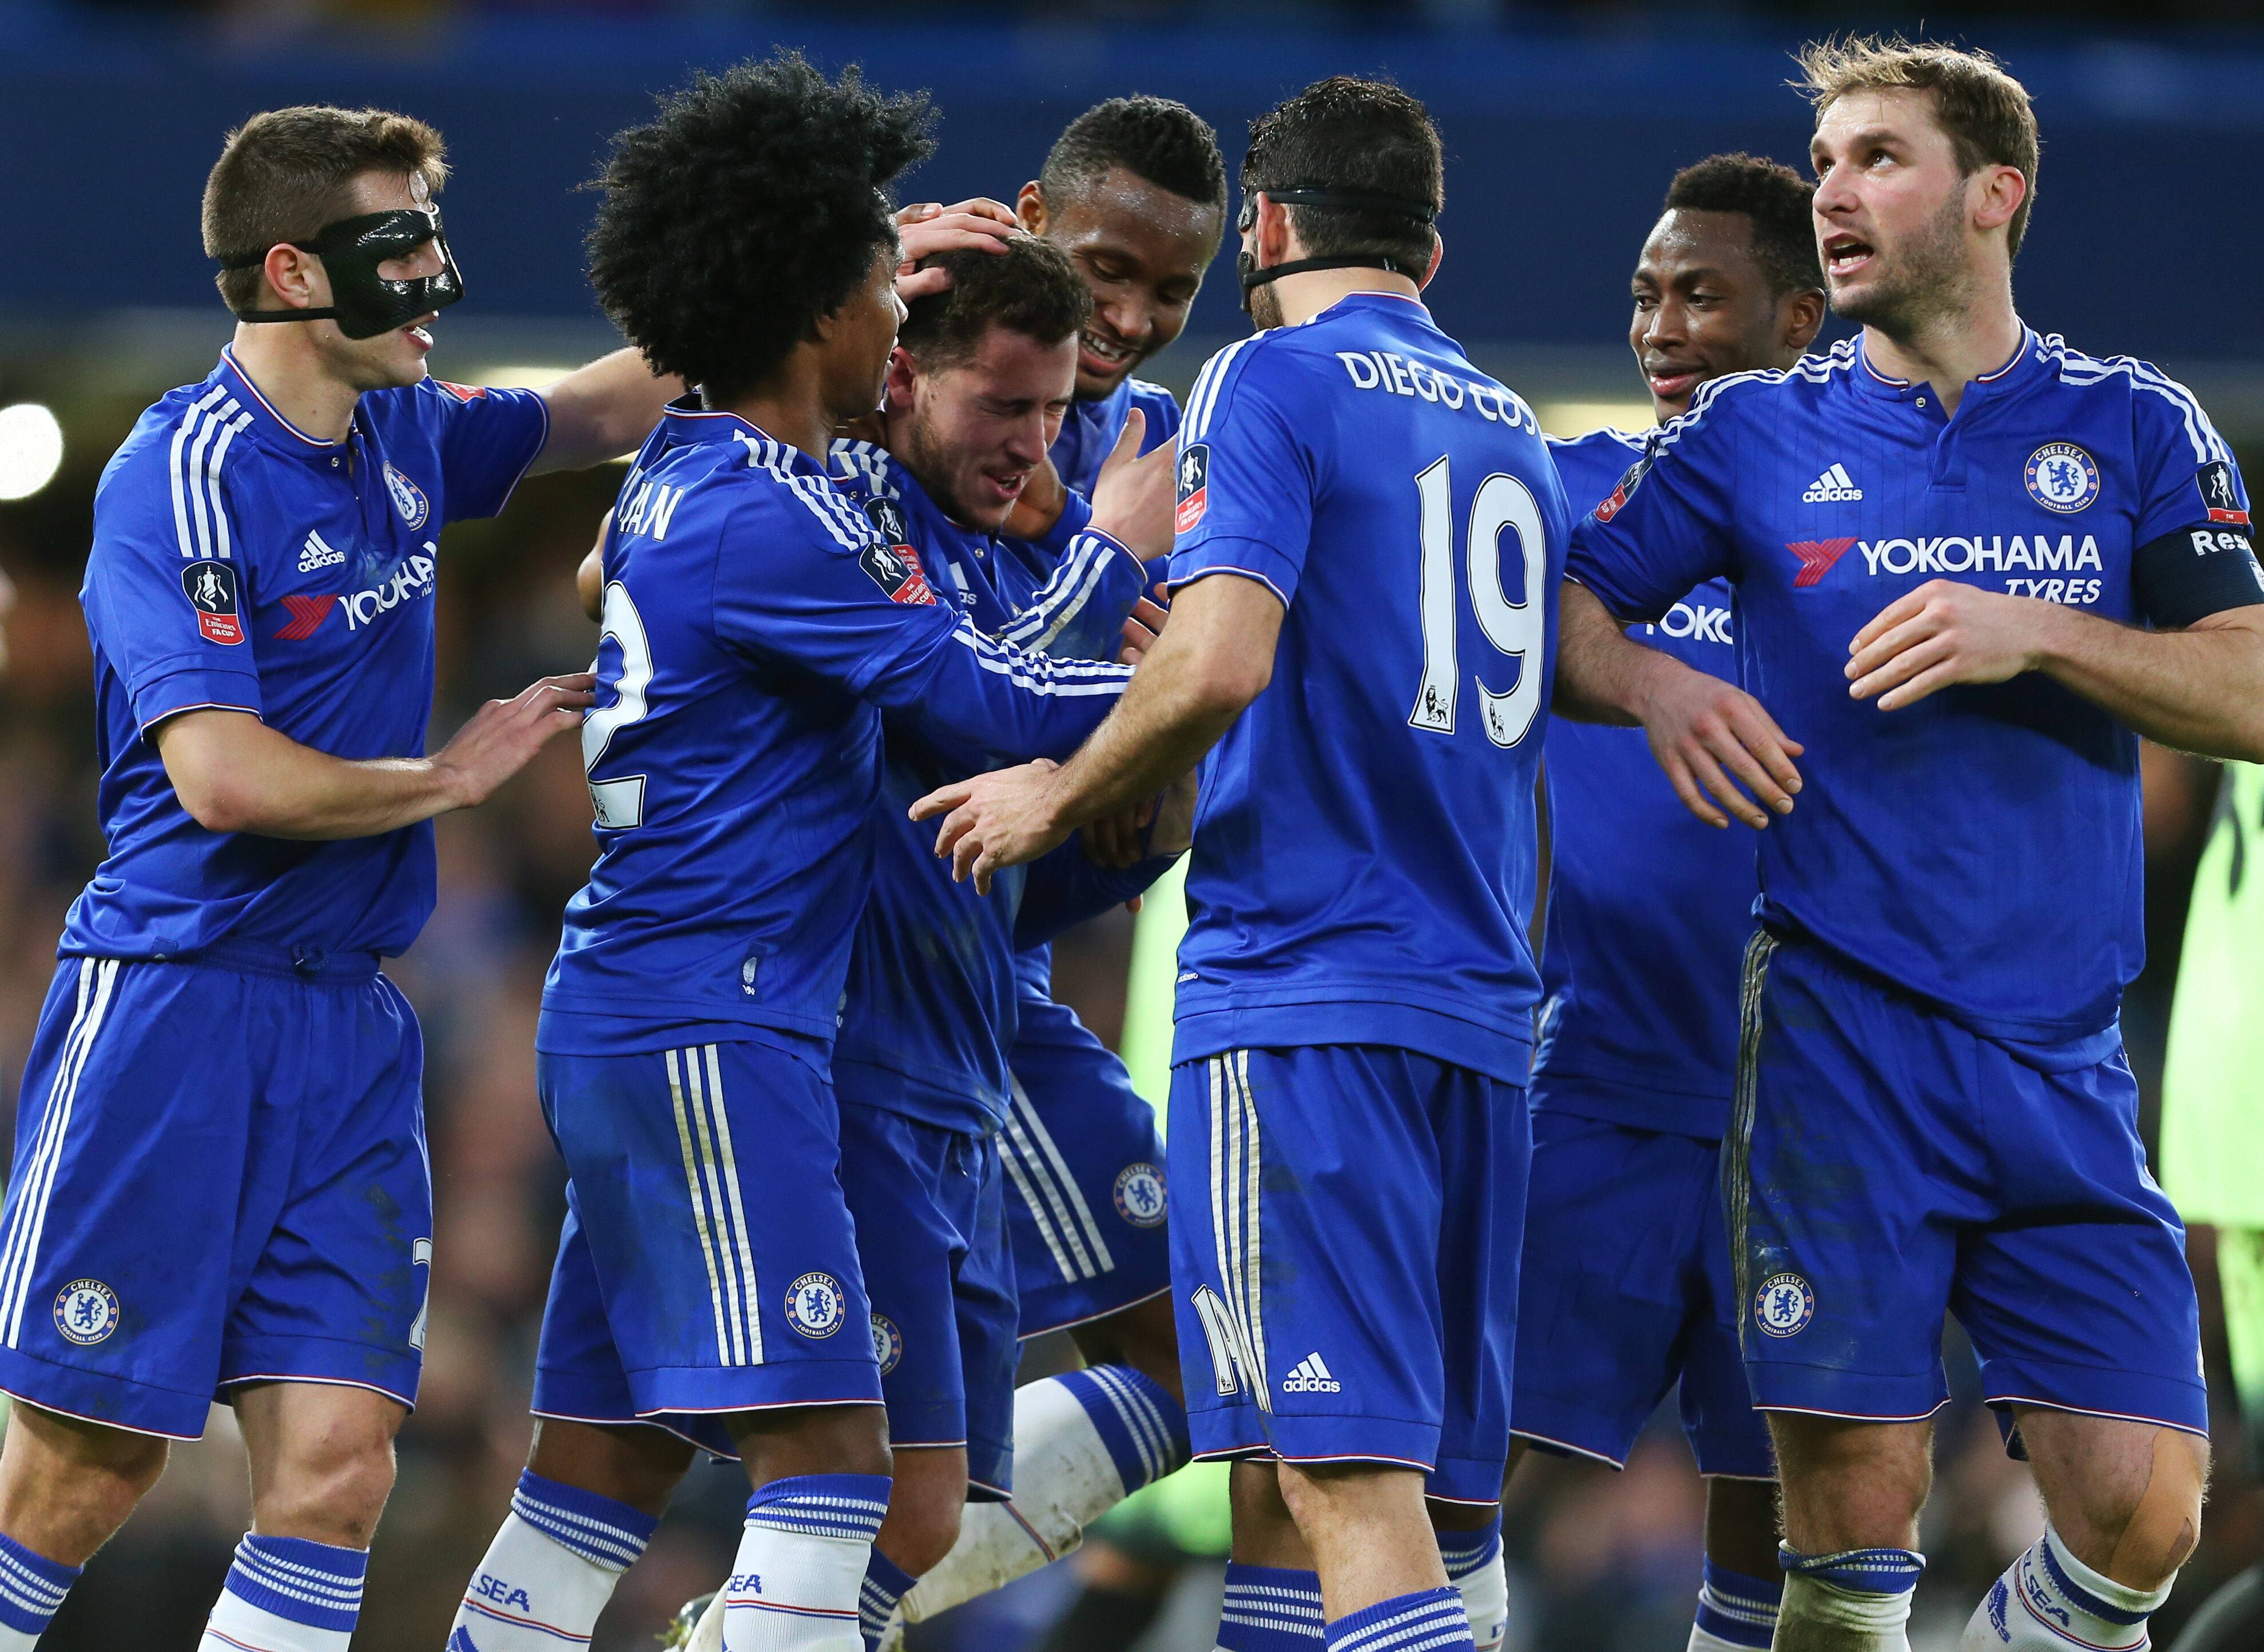 City   Chelsea: Willian And Eden Hazard Are Key To Chelsea's Premier